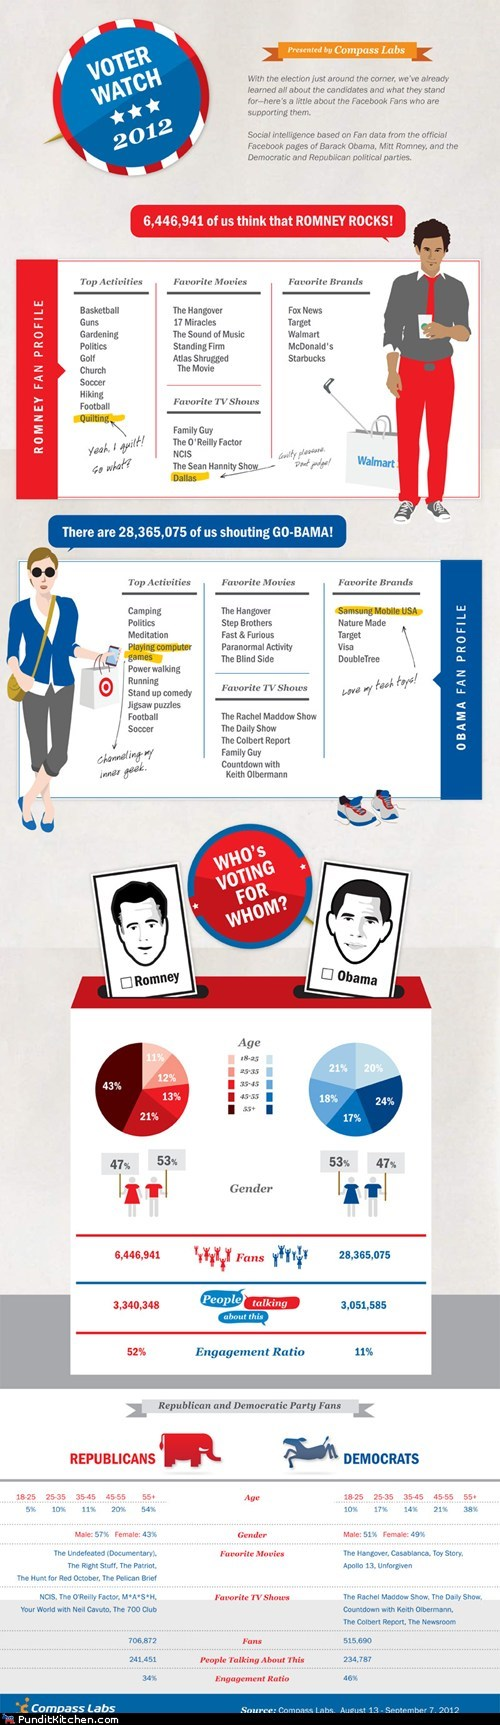 barack obama,facebook,fan pages,infographic,interests,likes,Mitt Romney